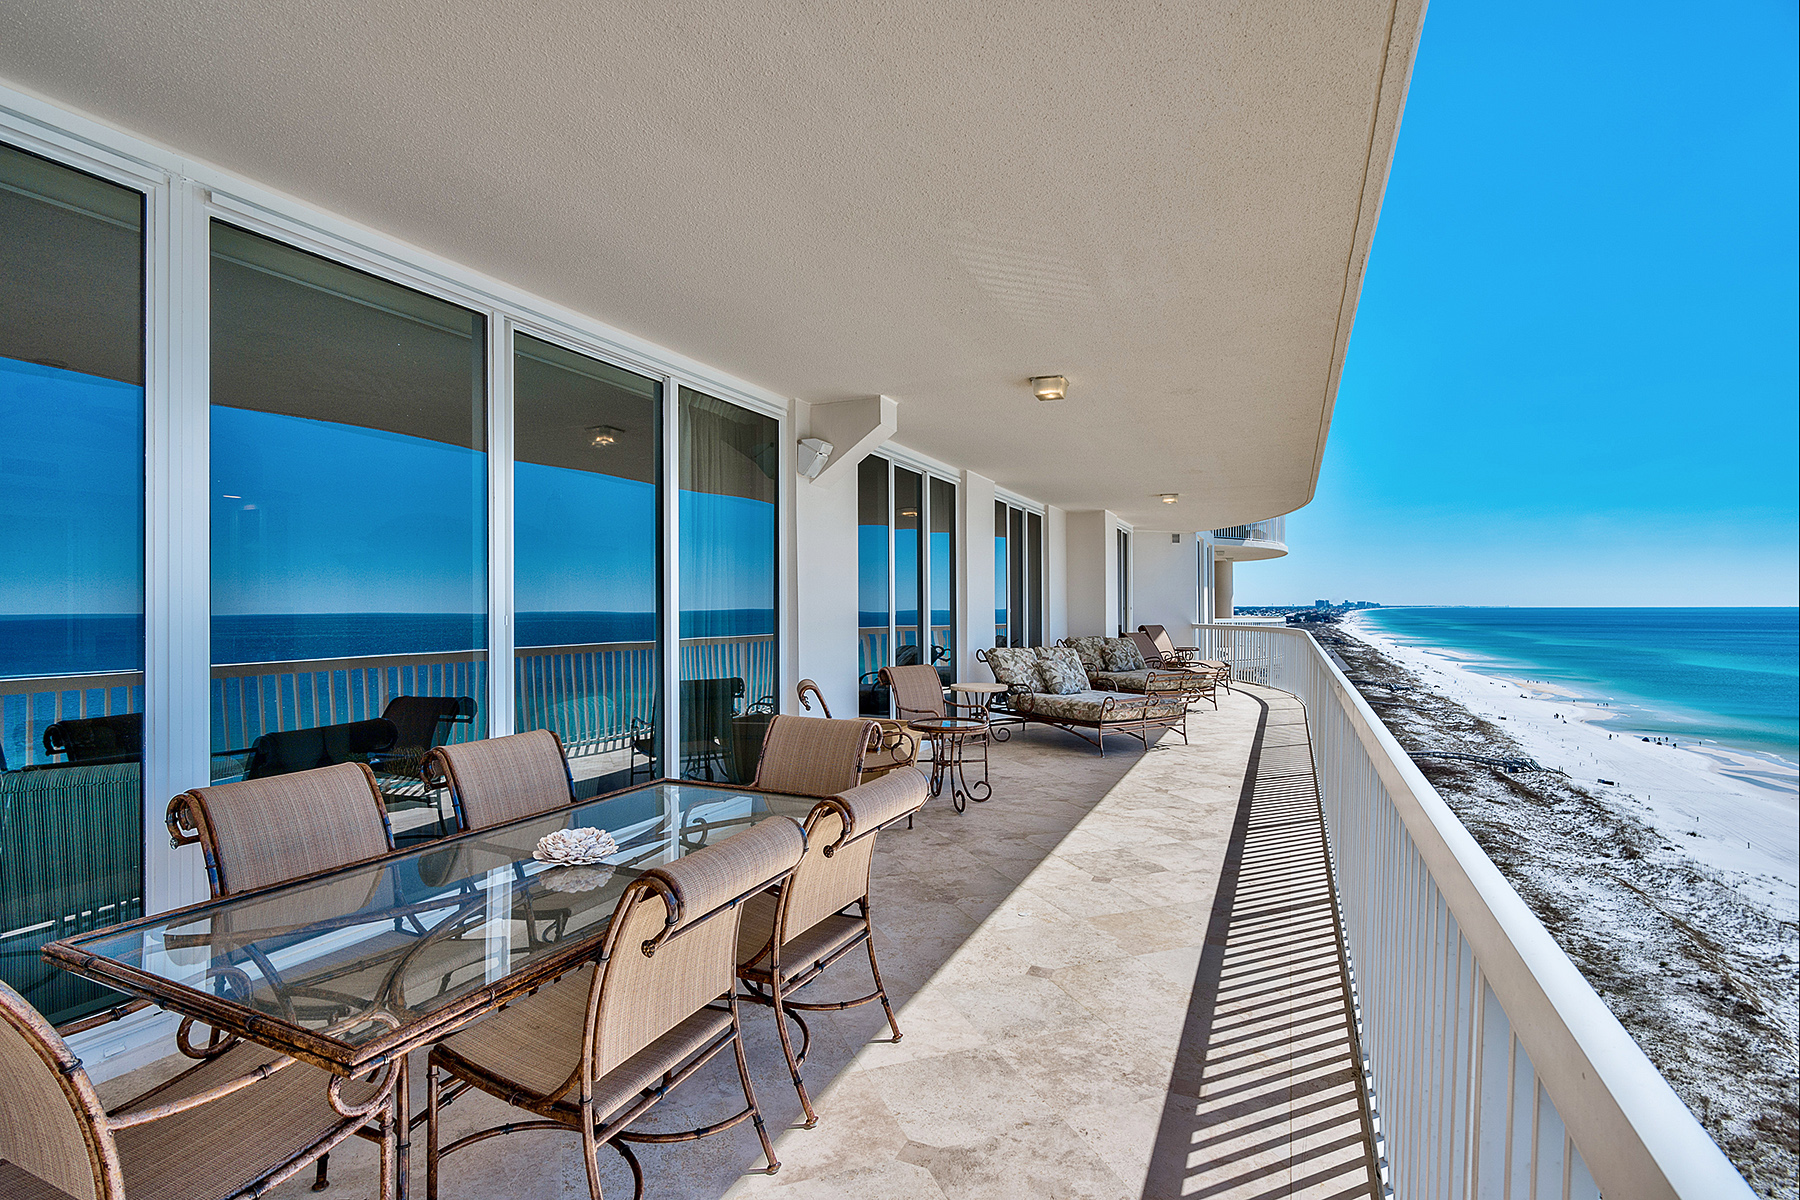 Copropriété pour l Vente à LUXURY GULF FRONT PENTHOUSE 15400 Emerald Coast Pkwy PH2B and T-135 Destin, Florida, 32541 États-Unis